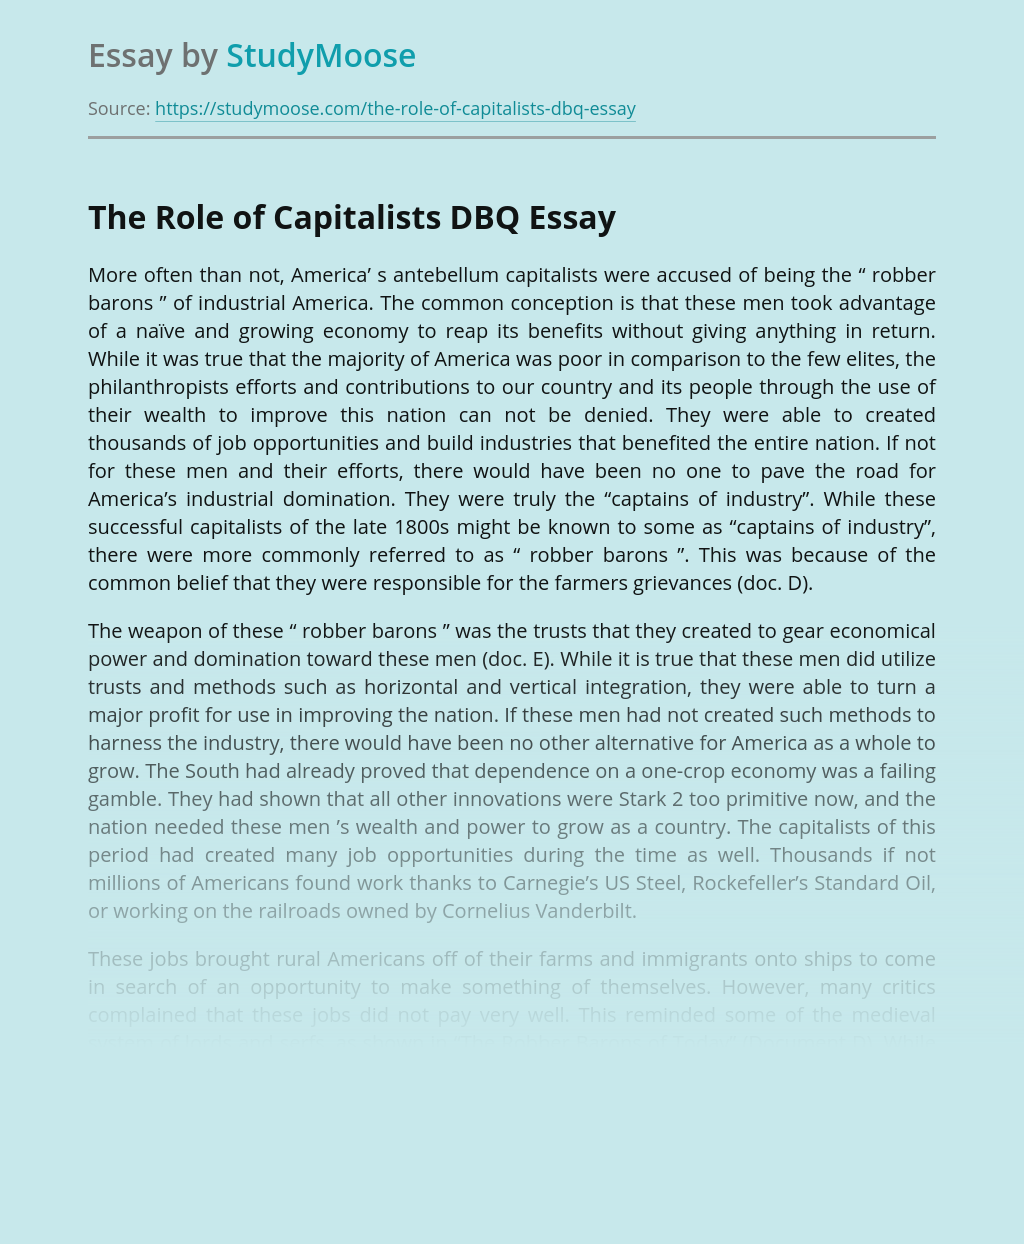 The Role of Capitalists DBQ